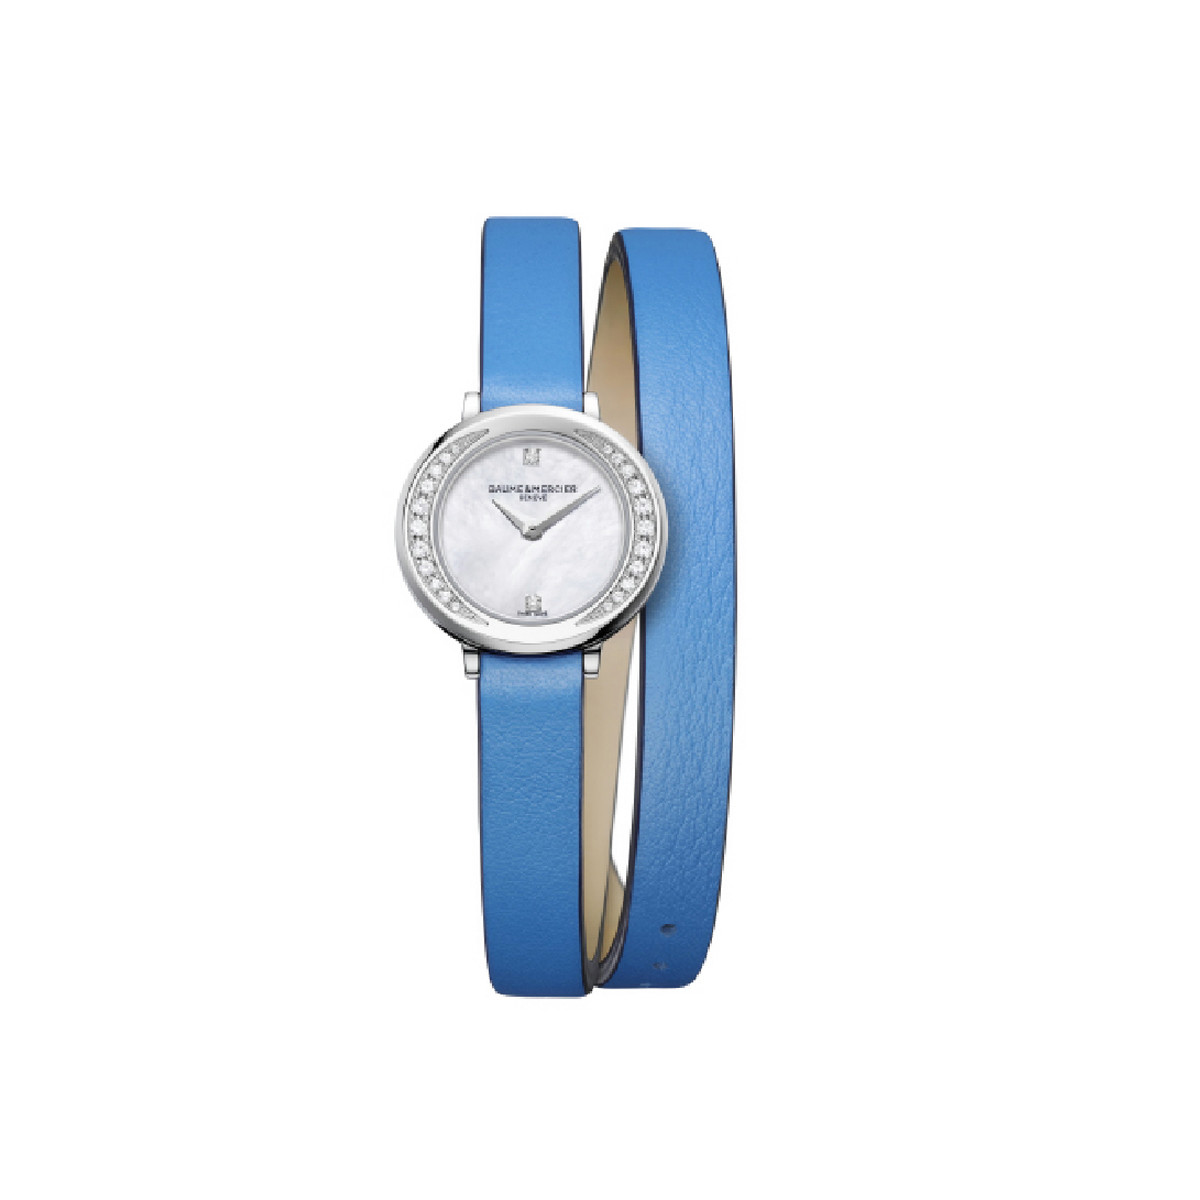 BAUMER MERCIER PROMESSE MOTHER OF PEARL AND BRILLIANT BLUE STRAP